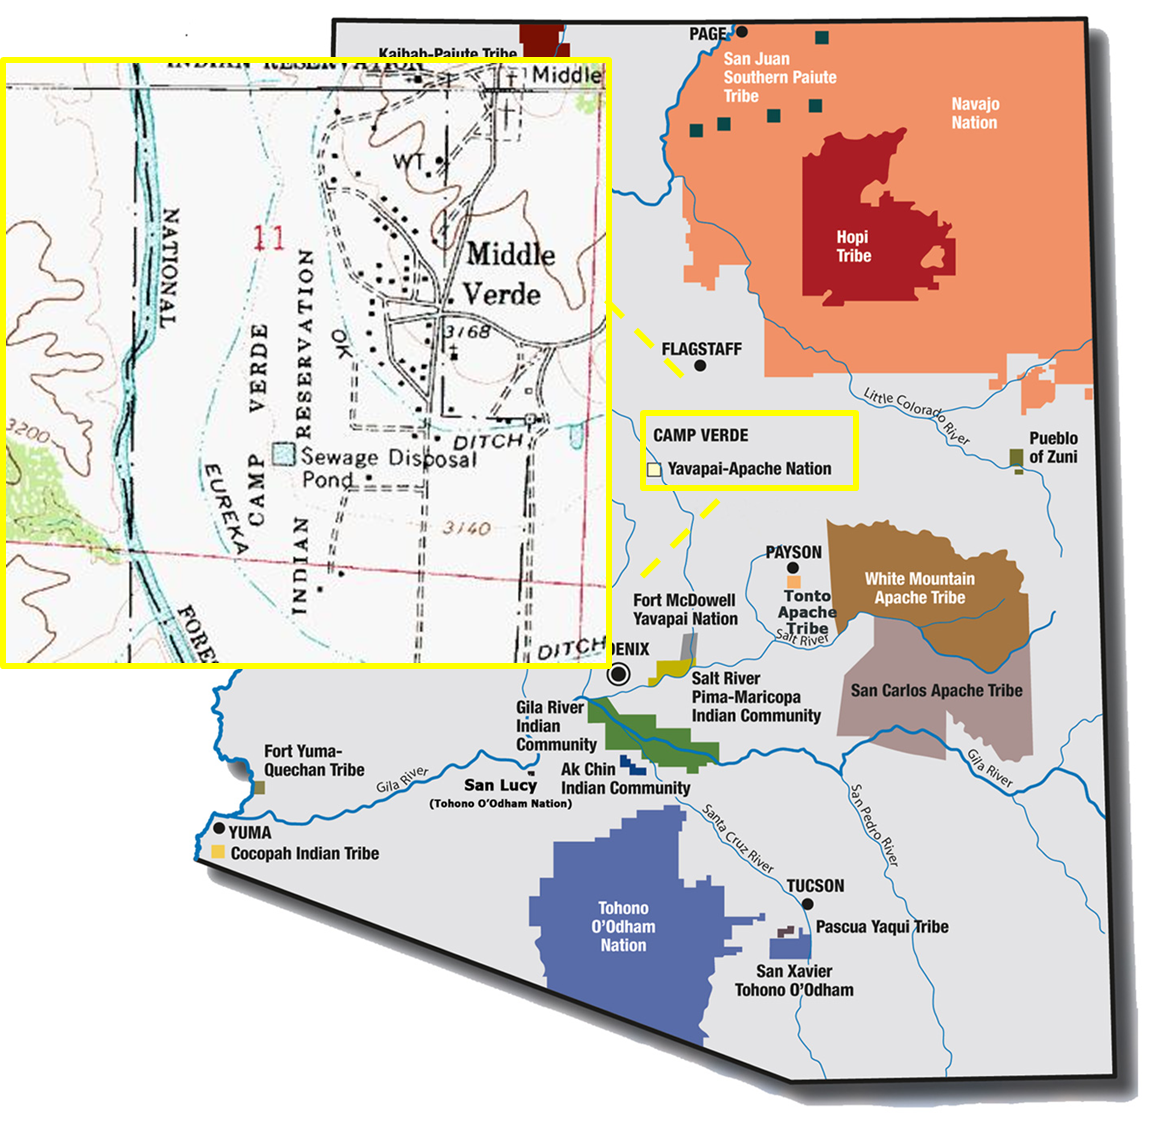 Yavapai-Apache Nation | Tribal Water Uses in the Colorado ...